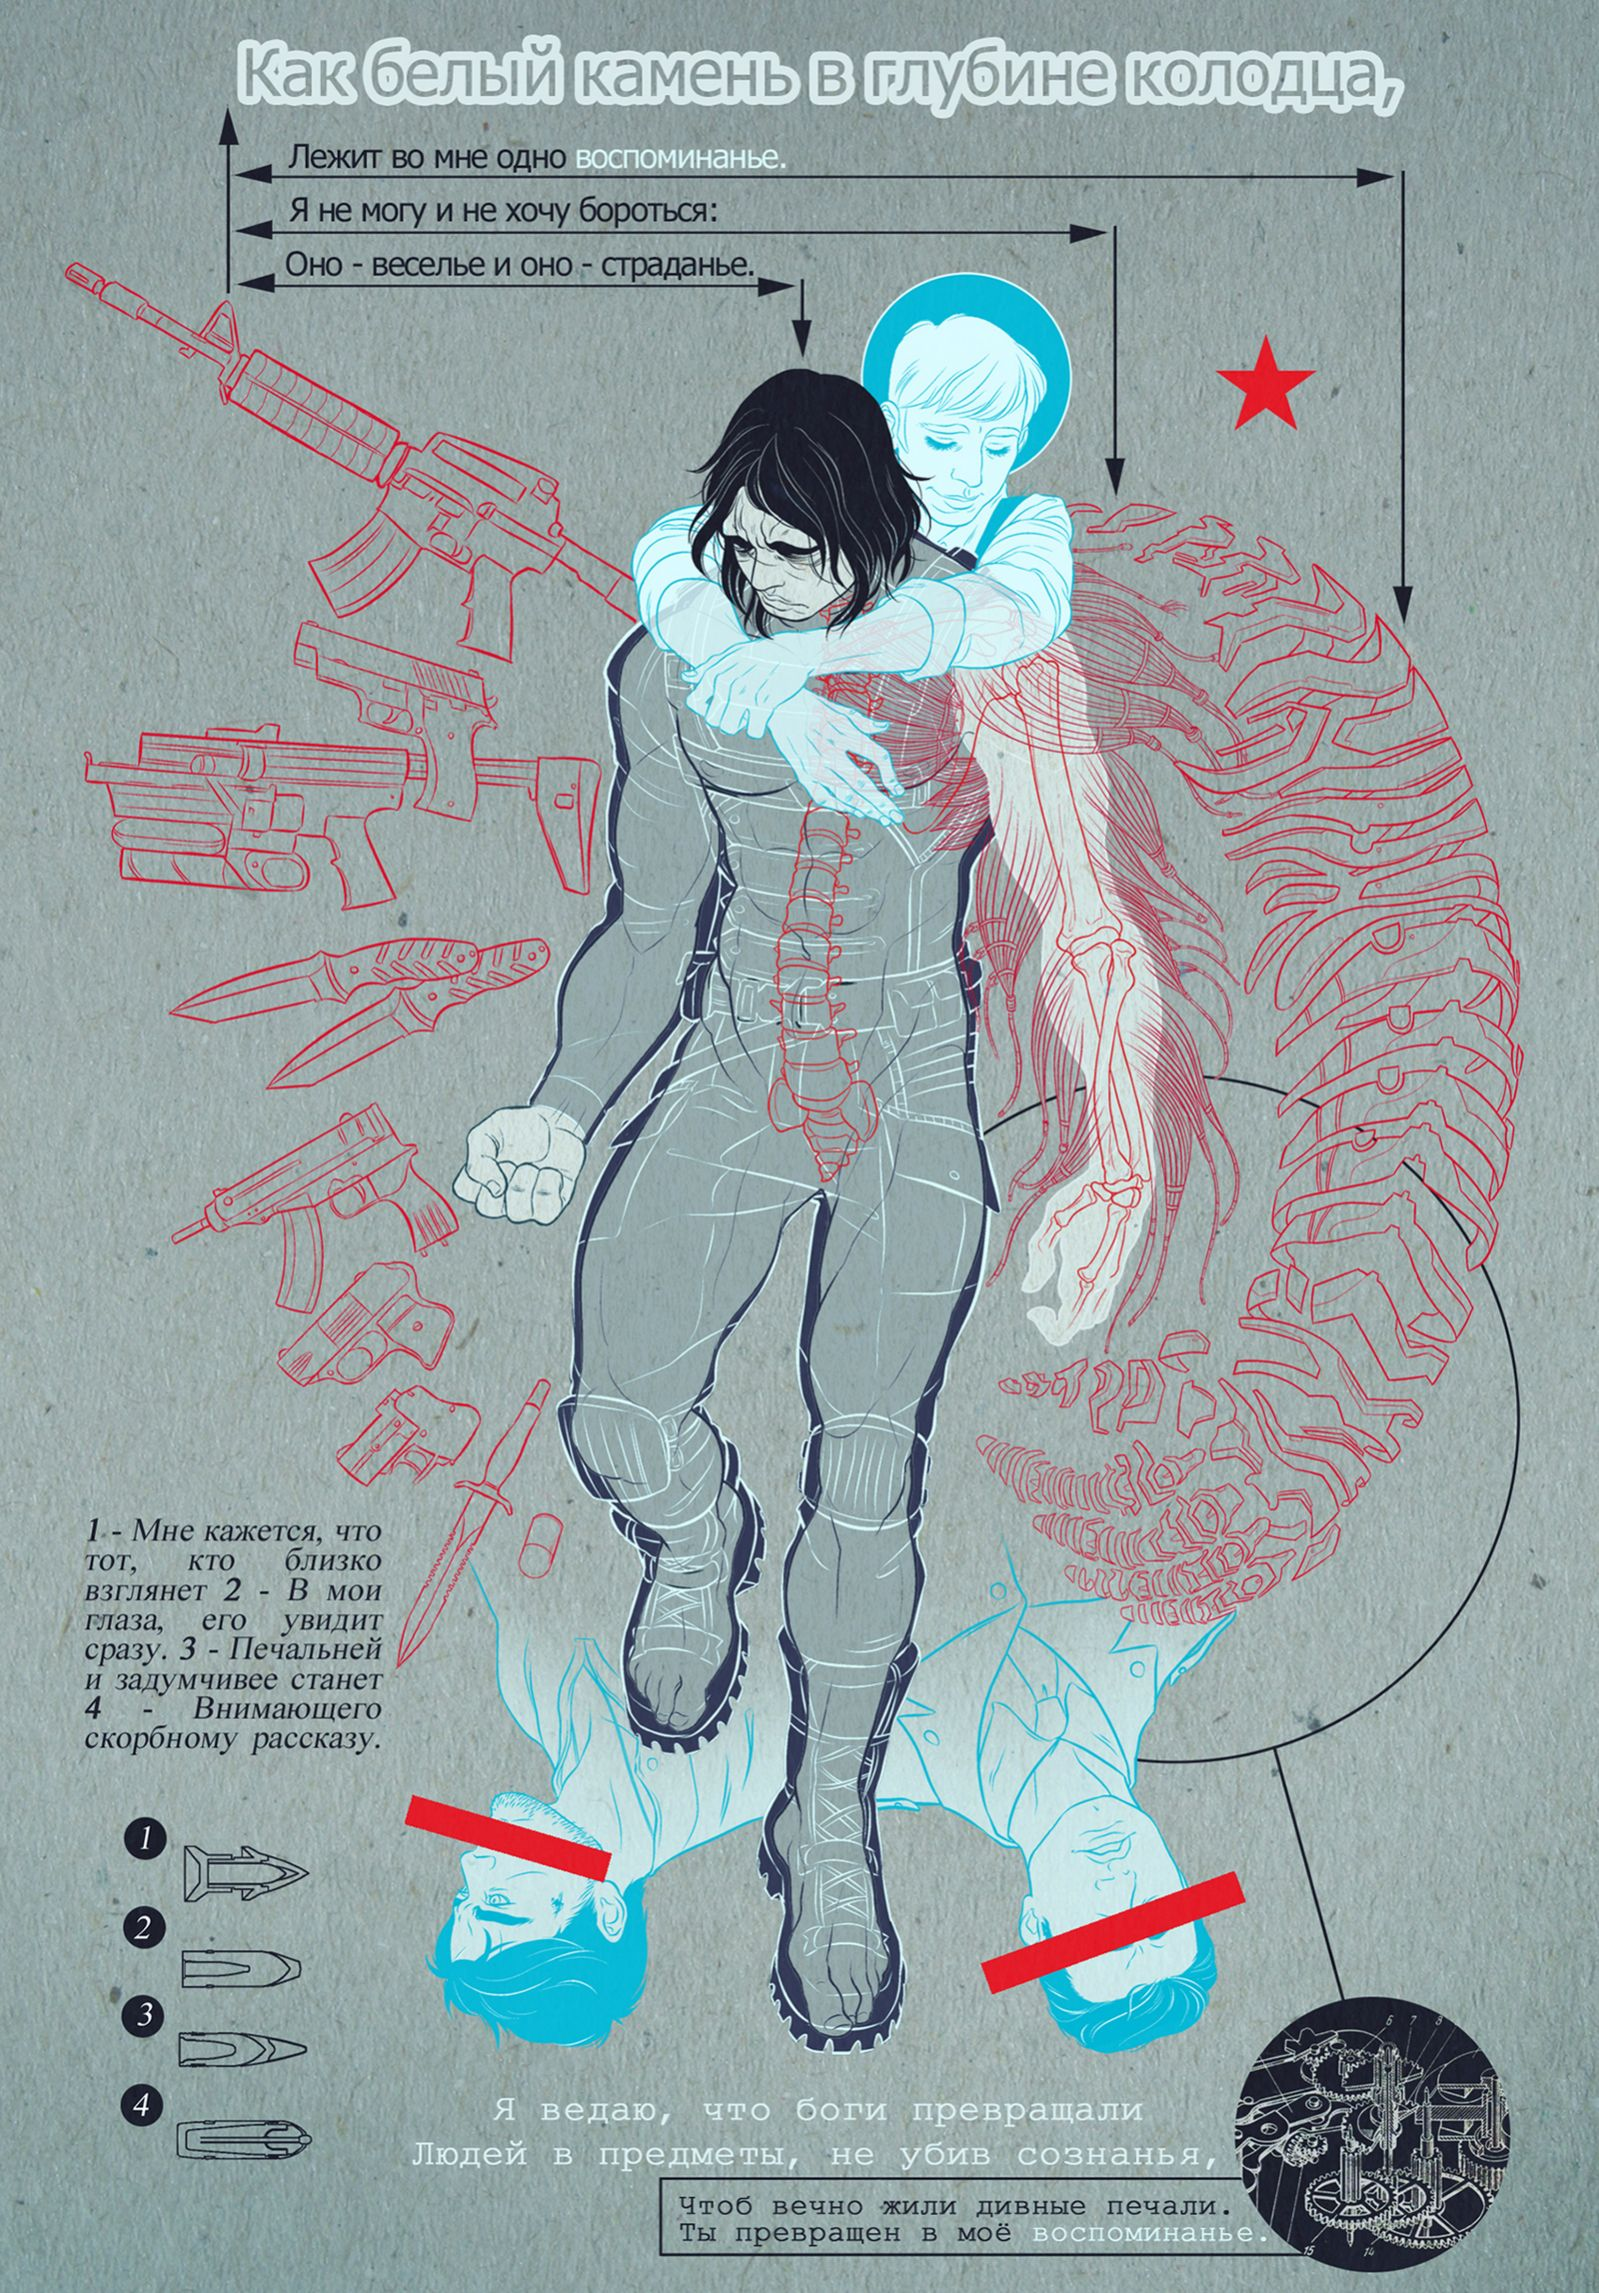 The Internet's obsession with the Winter Soldier's robot arm